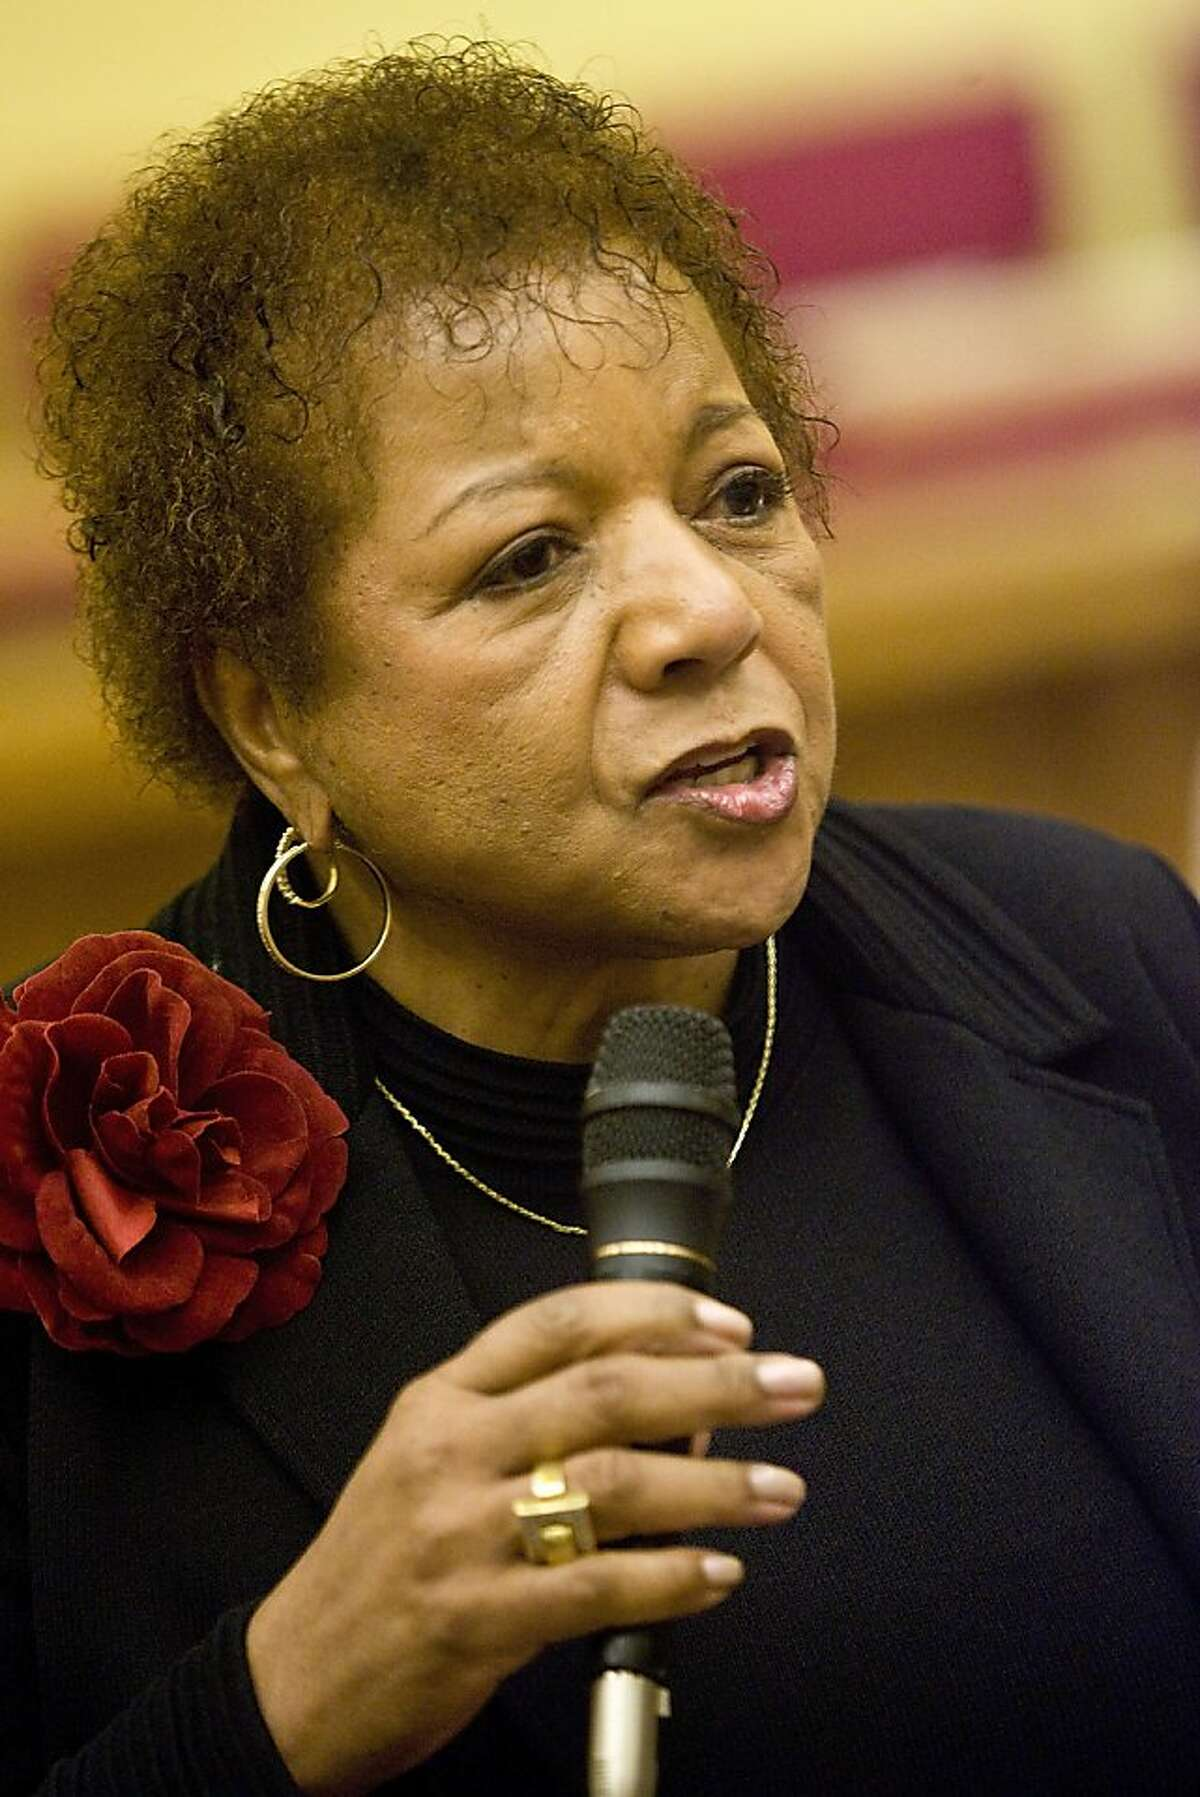 Alice Huffman, President, California Conference of the NAACP speaks to people gathered at the Jones United Methodist Church to participate in a worship and panel discussion about marriage equality on October 18, 2008 in San Francisco, California. (Photograph by David Paul Morris / The Chronicle)